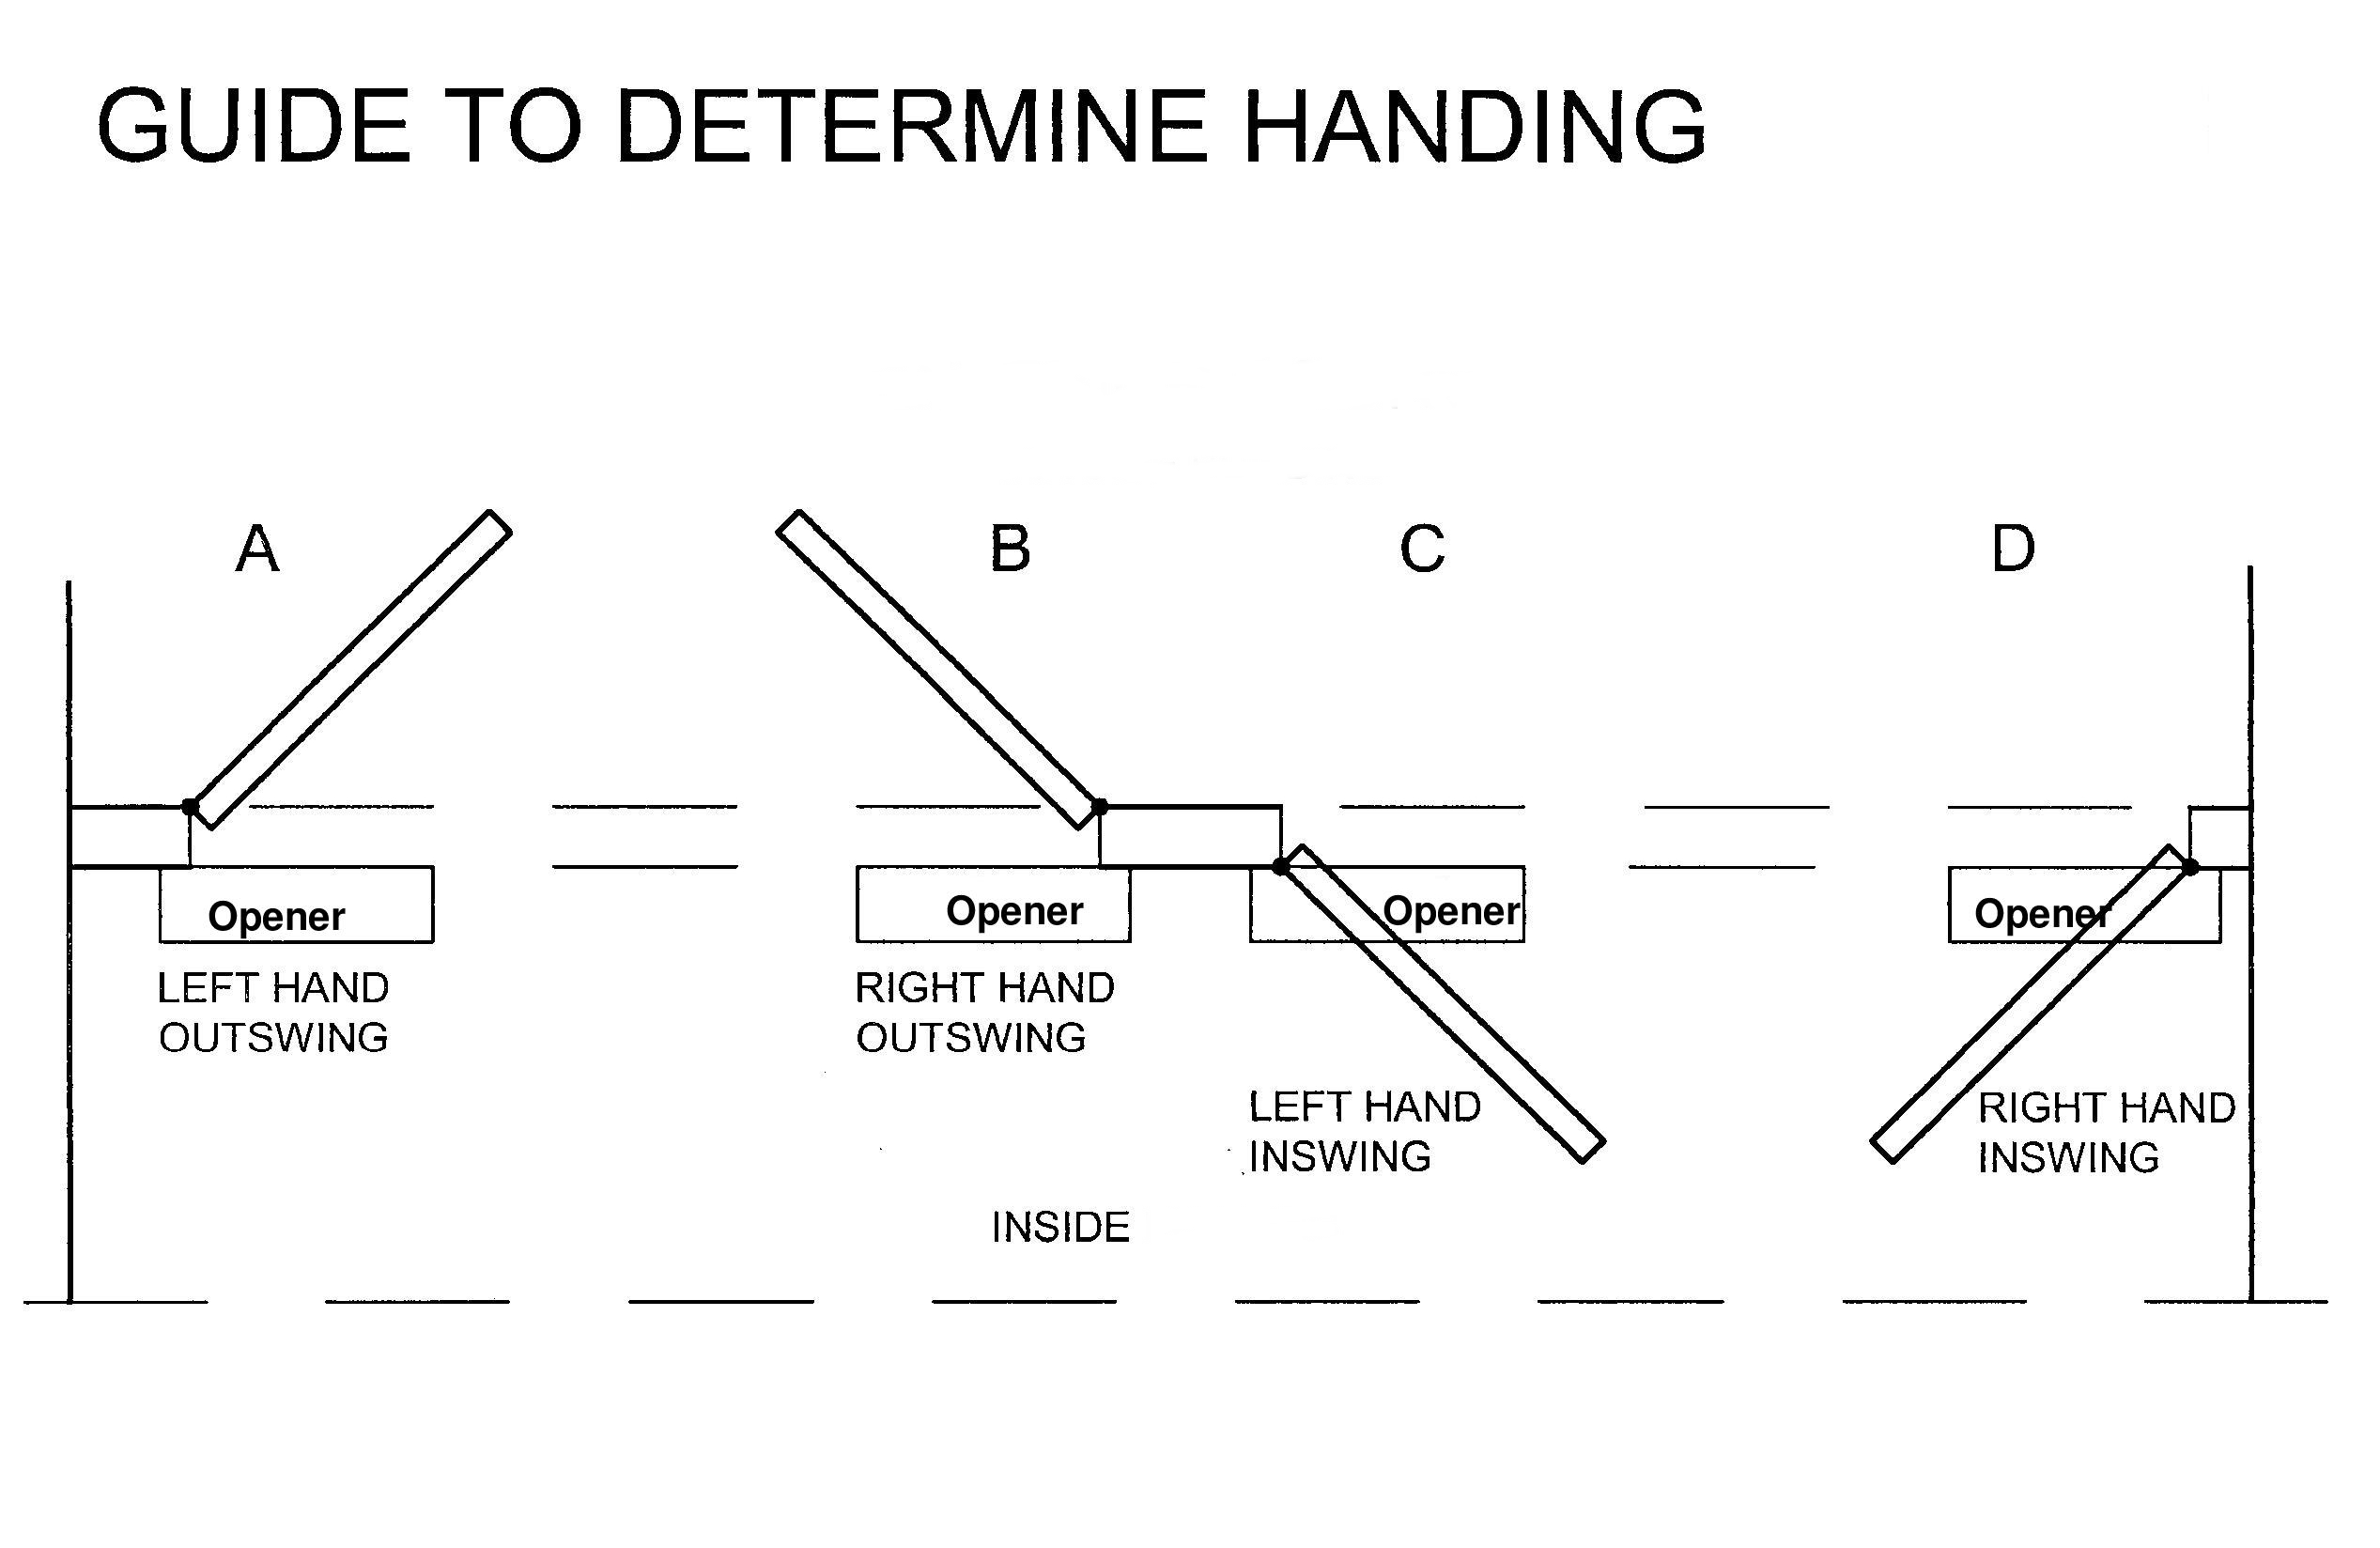 handing-form-cp-revised.jpg